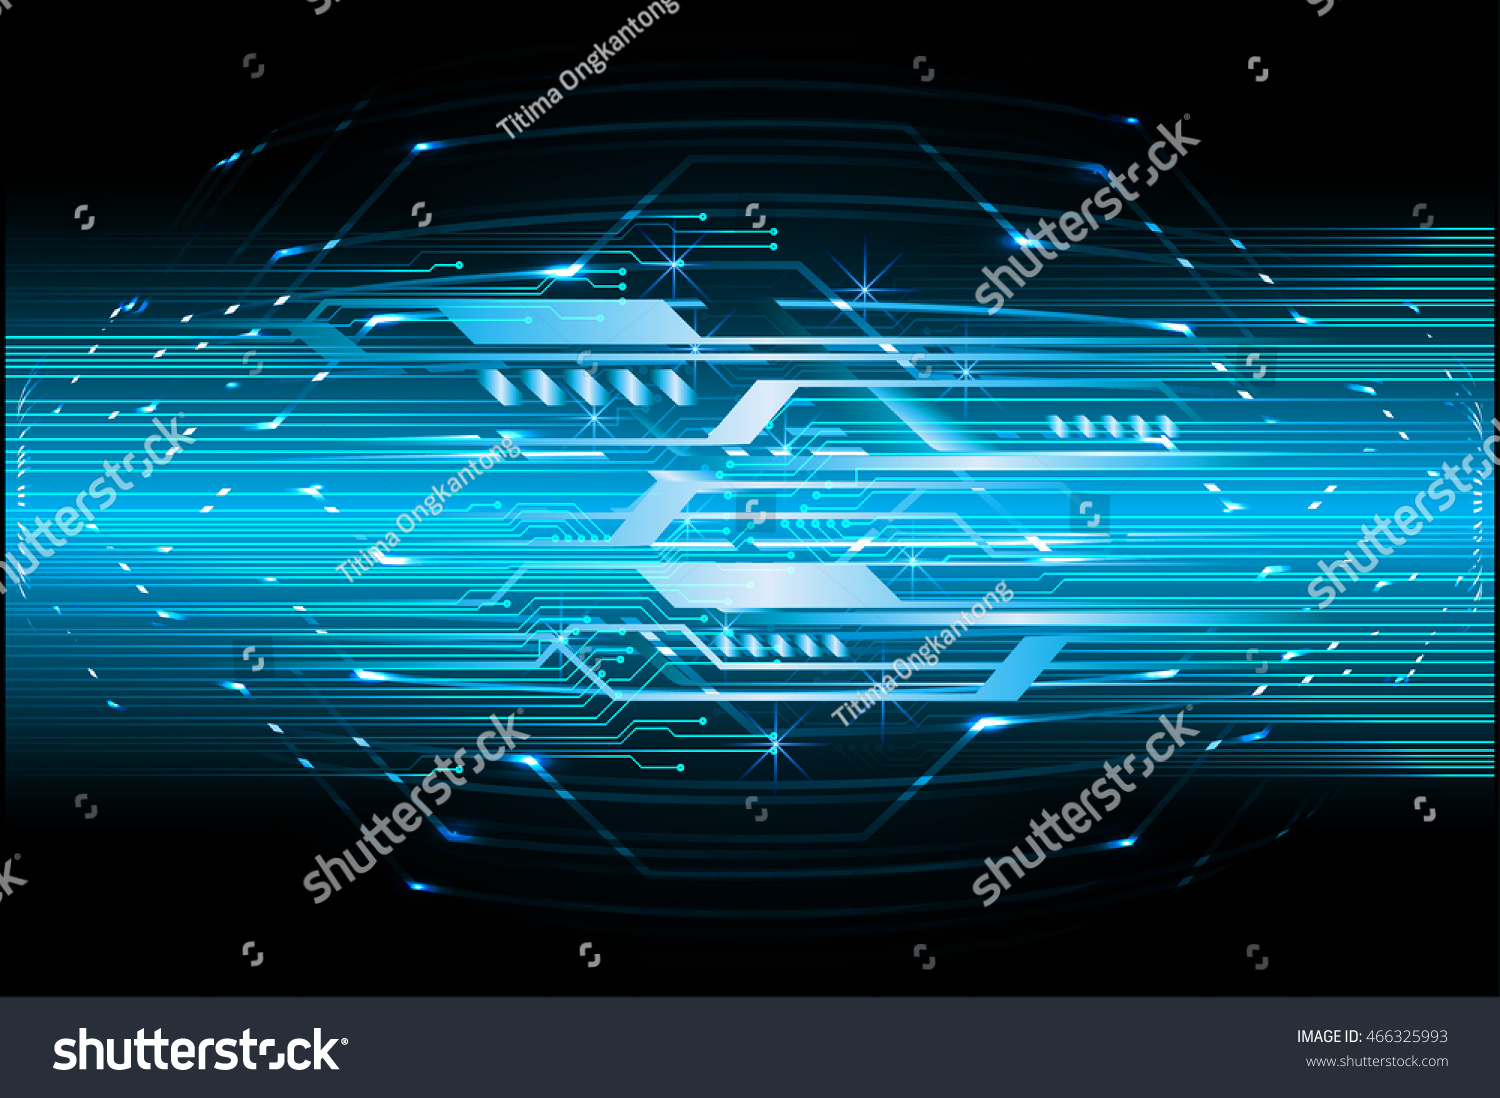 Blue Abstract Cyber Future Technology Concept Background Abstact With Circuit Board And Binary Code Stock Images Id 466325993